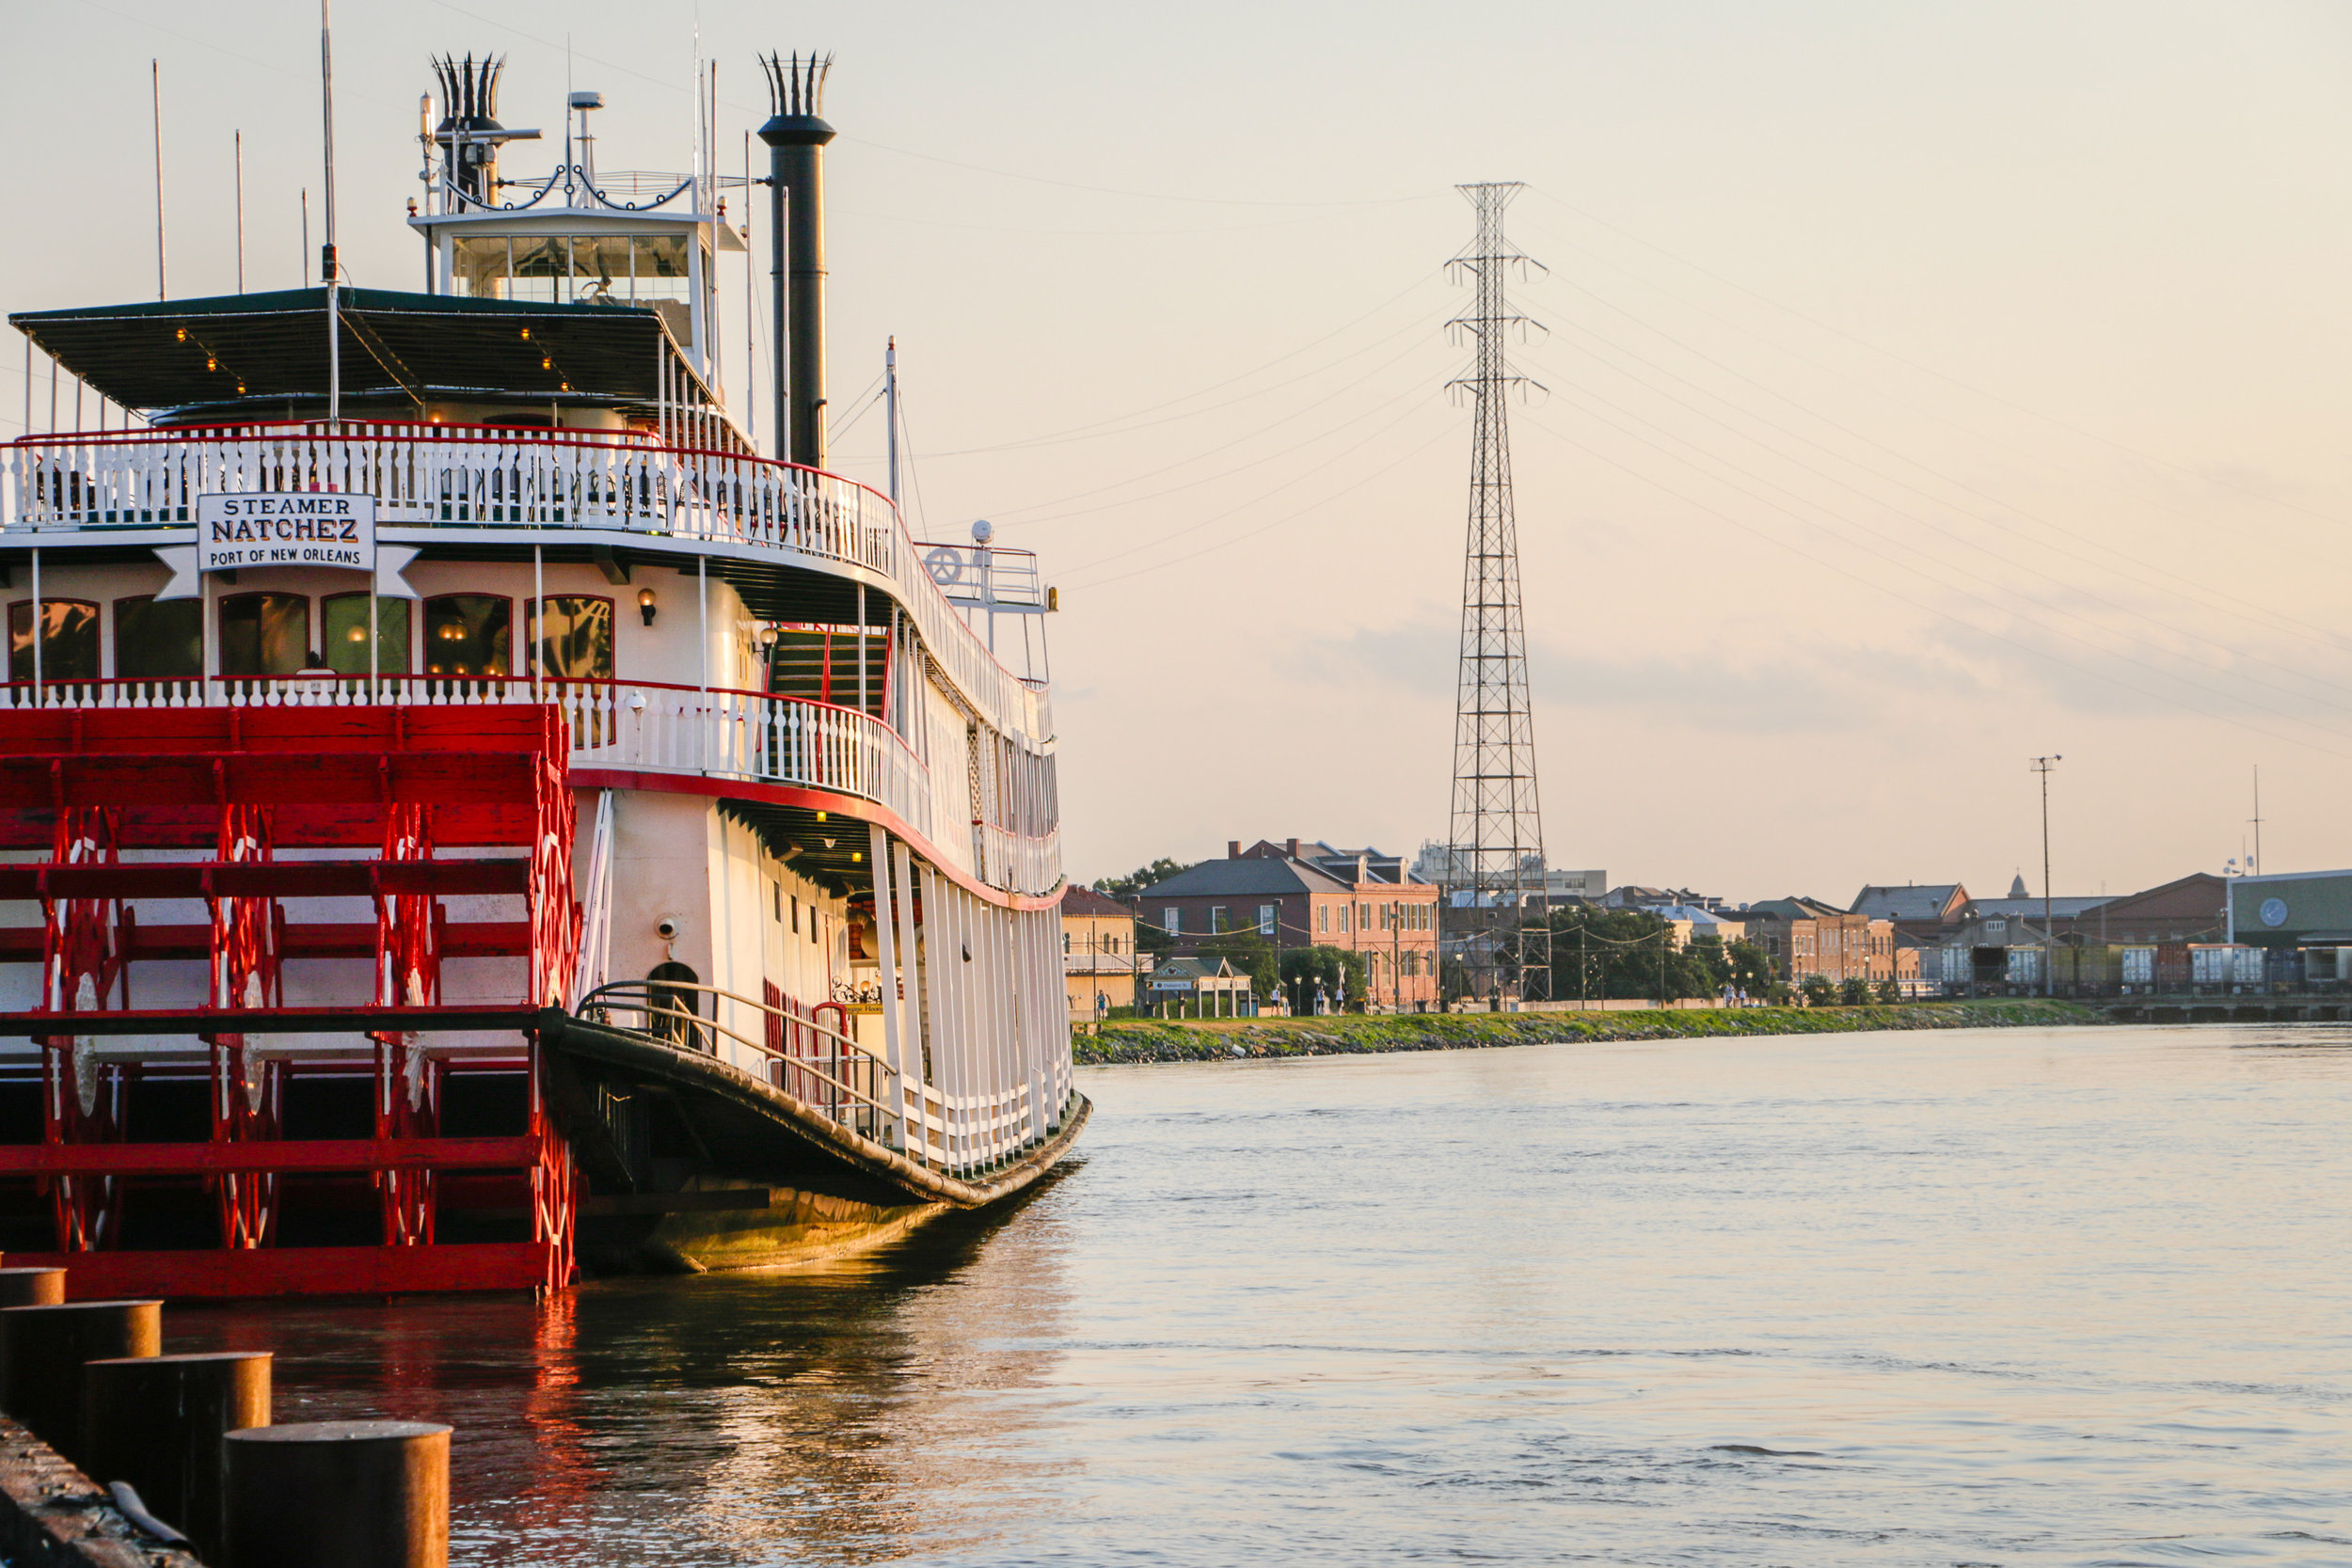 Steamboat Natchez by Paul Broussard16.jpg